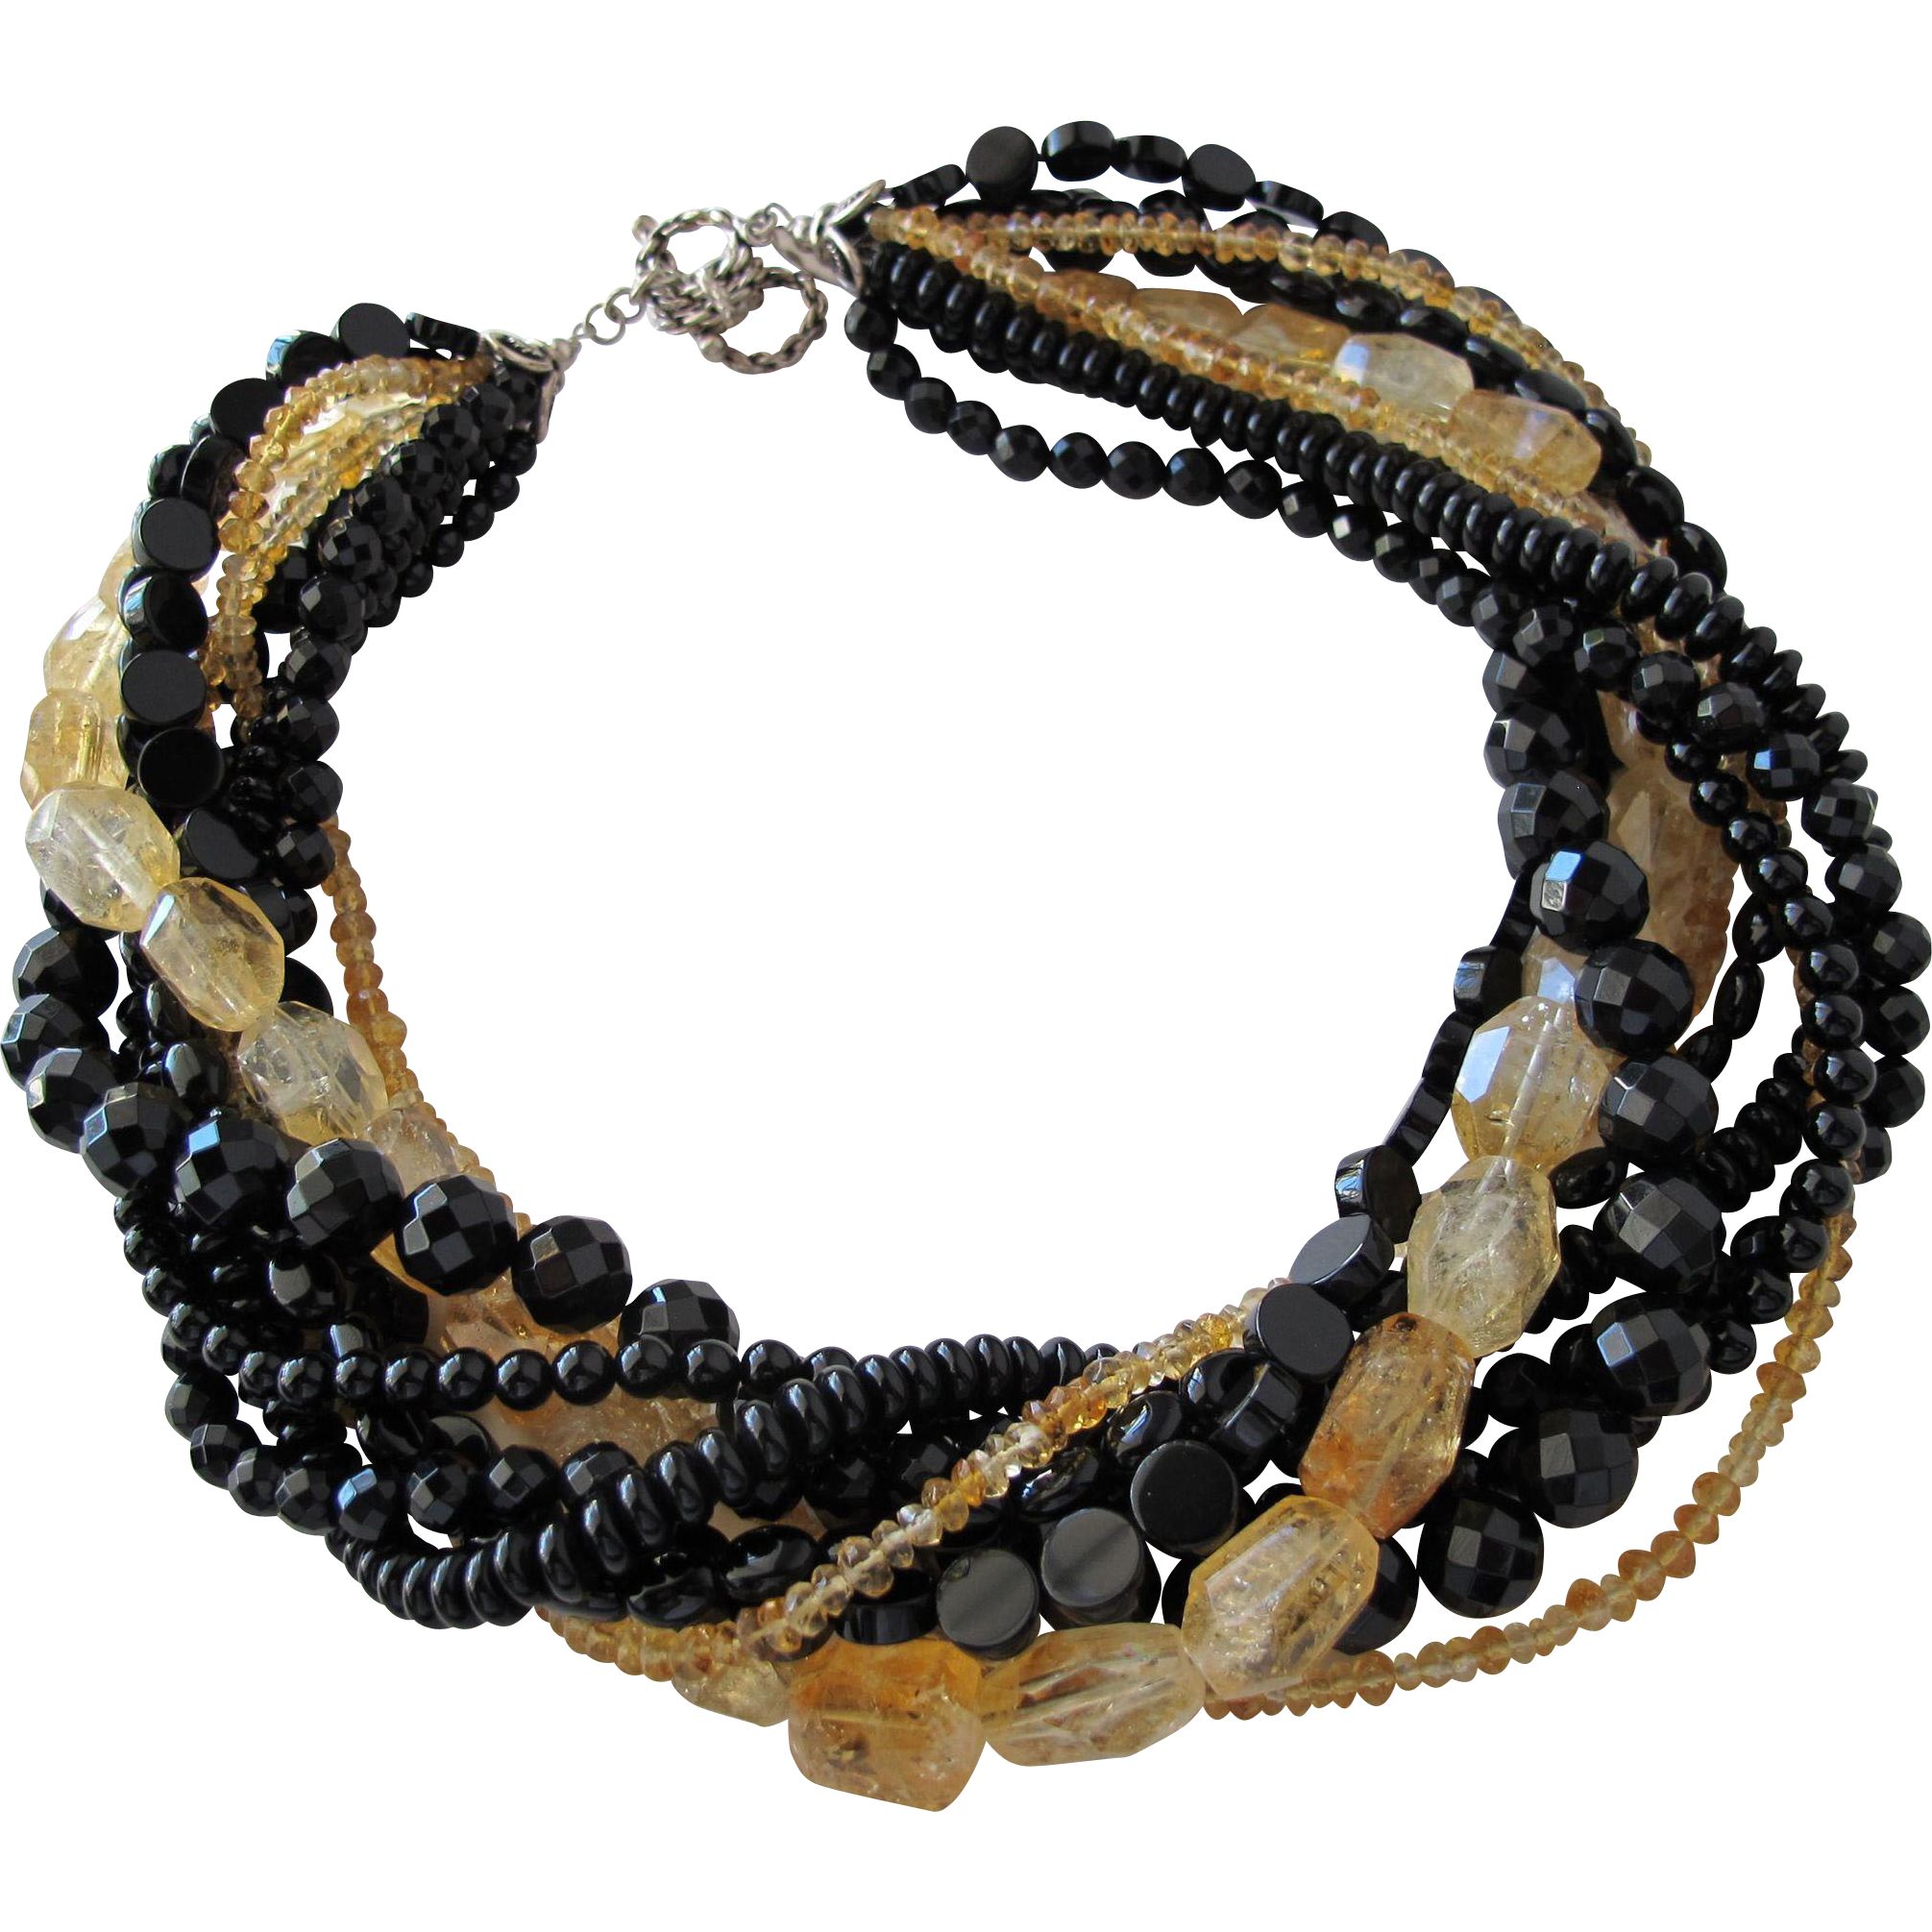 Necklace Strands of Amber Quartz and Onyx Stone Sterling Silver Clasp Designer Piece